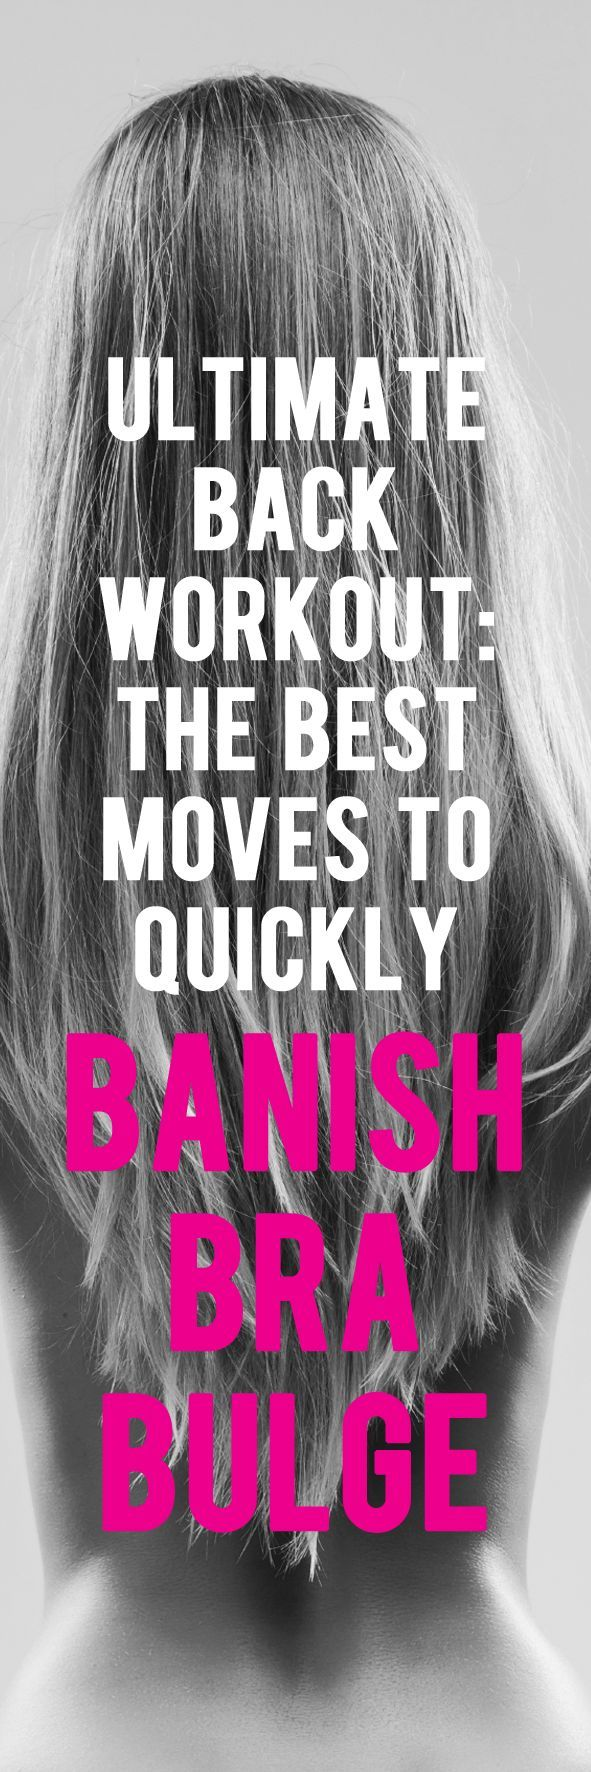 This is how you get rid of back fat. #backworkout #backexercise #brabulge